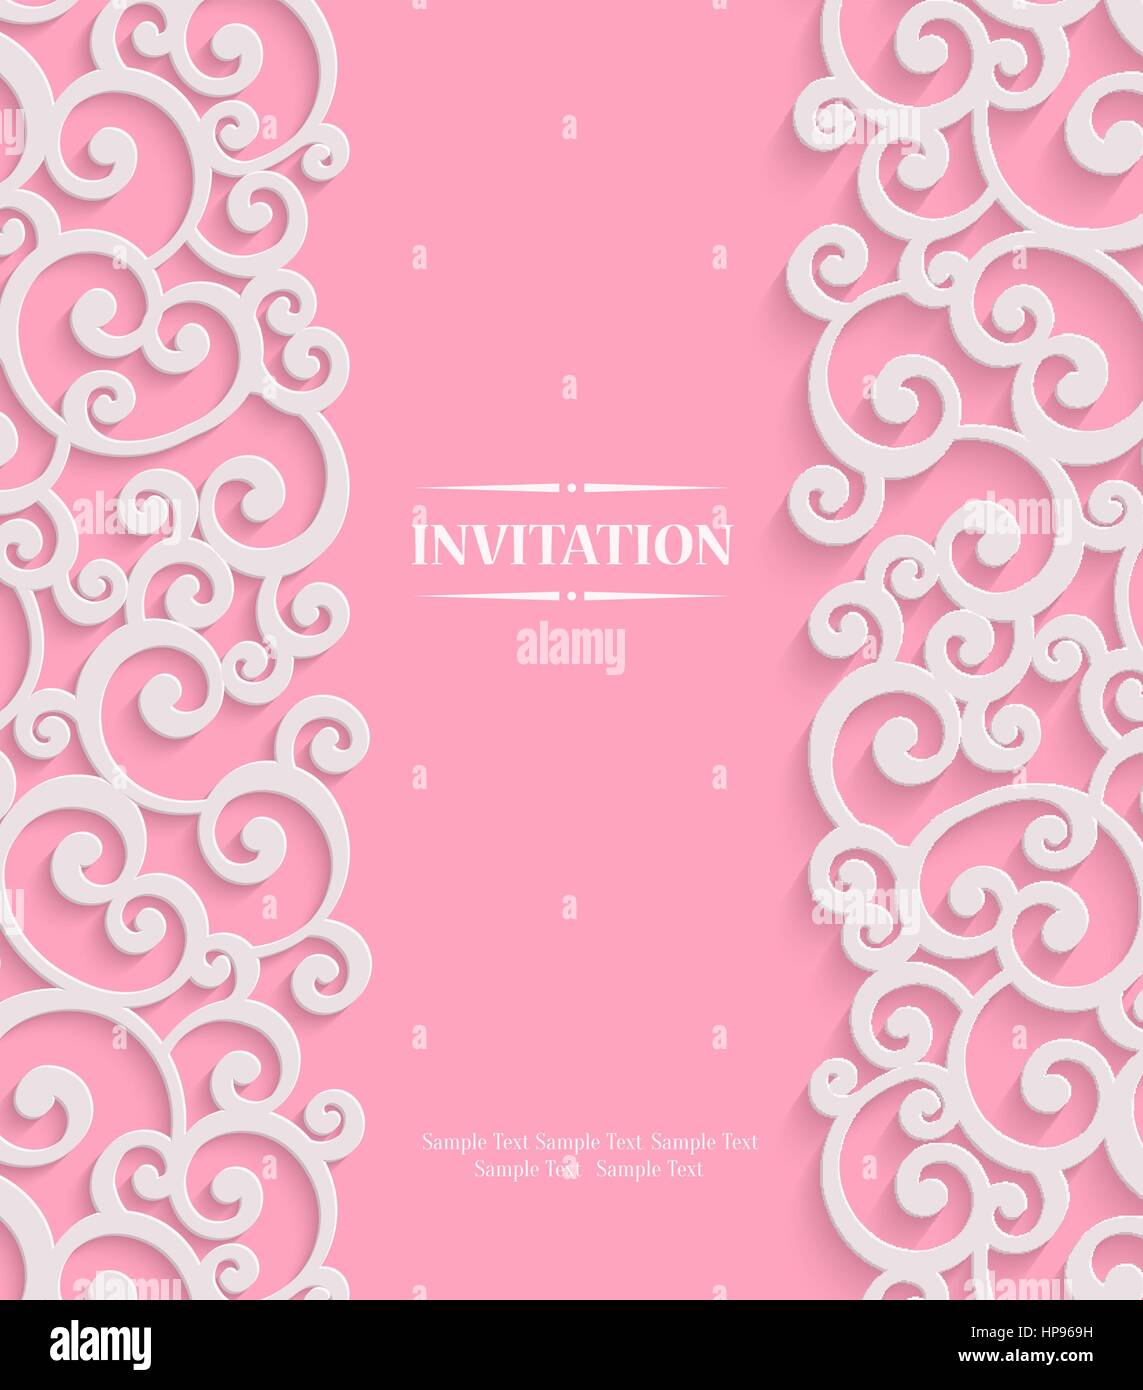 Pink 3d swirl valentines day card with floral curl pattern stock pink 3d swirl valentines day card with floral curl pattern invitation vector template background stopboris Choice Image